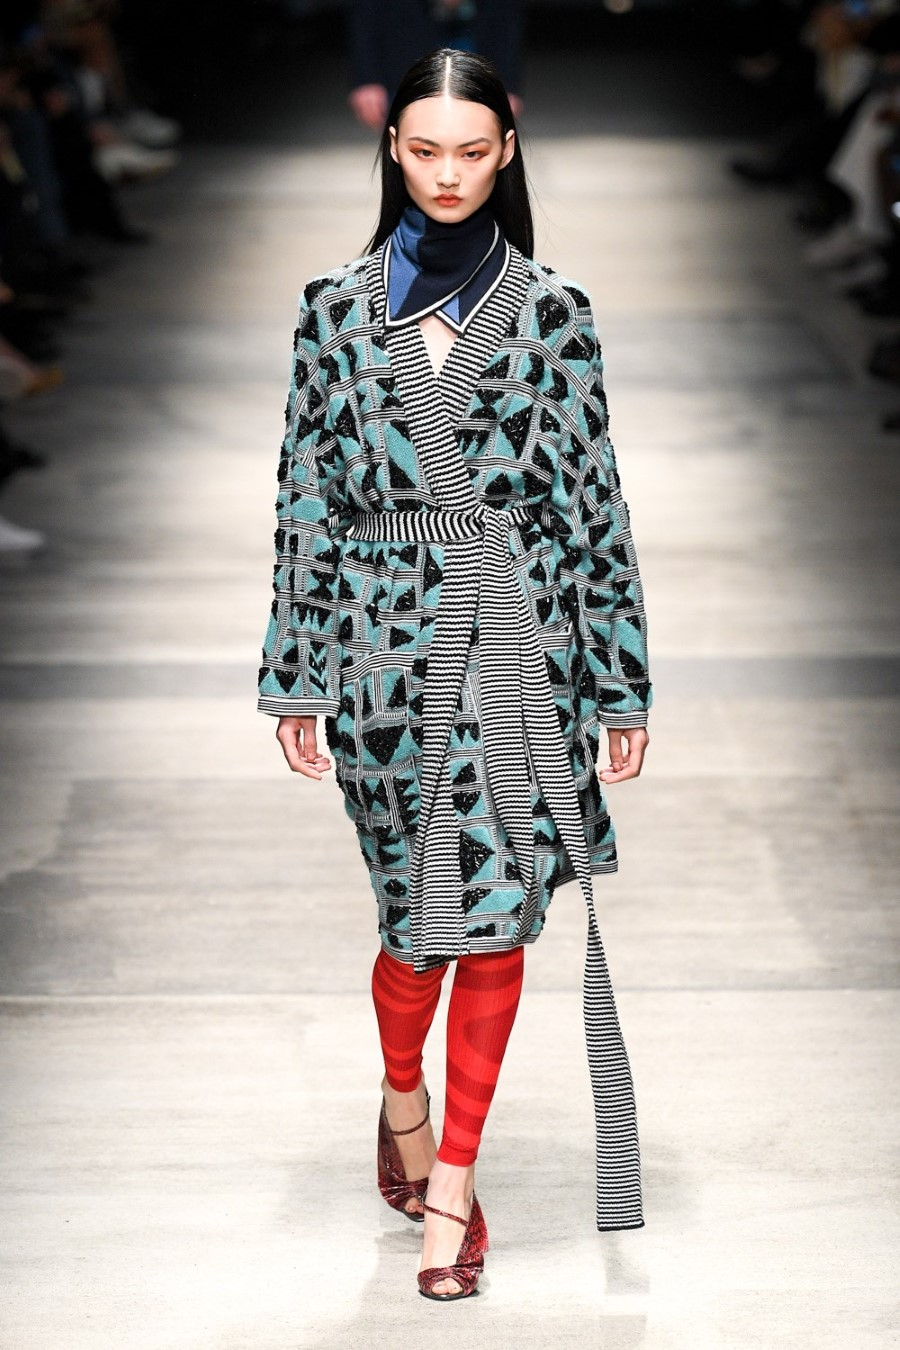 Missoni - Fall Winter 2020 - MilMissoni - Fall Winter 2020 - Milan Fashion Weekan Fashion Week